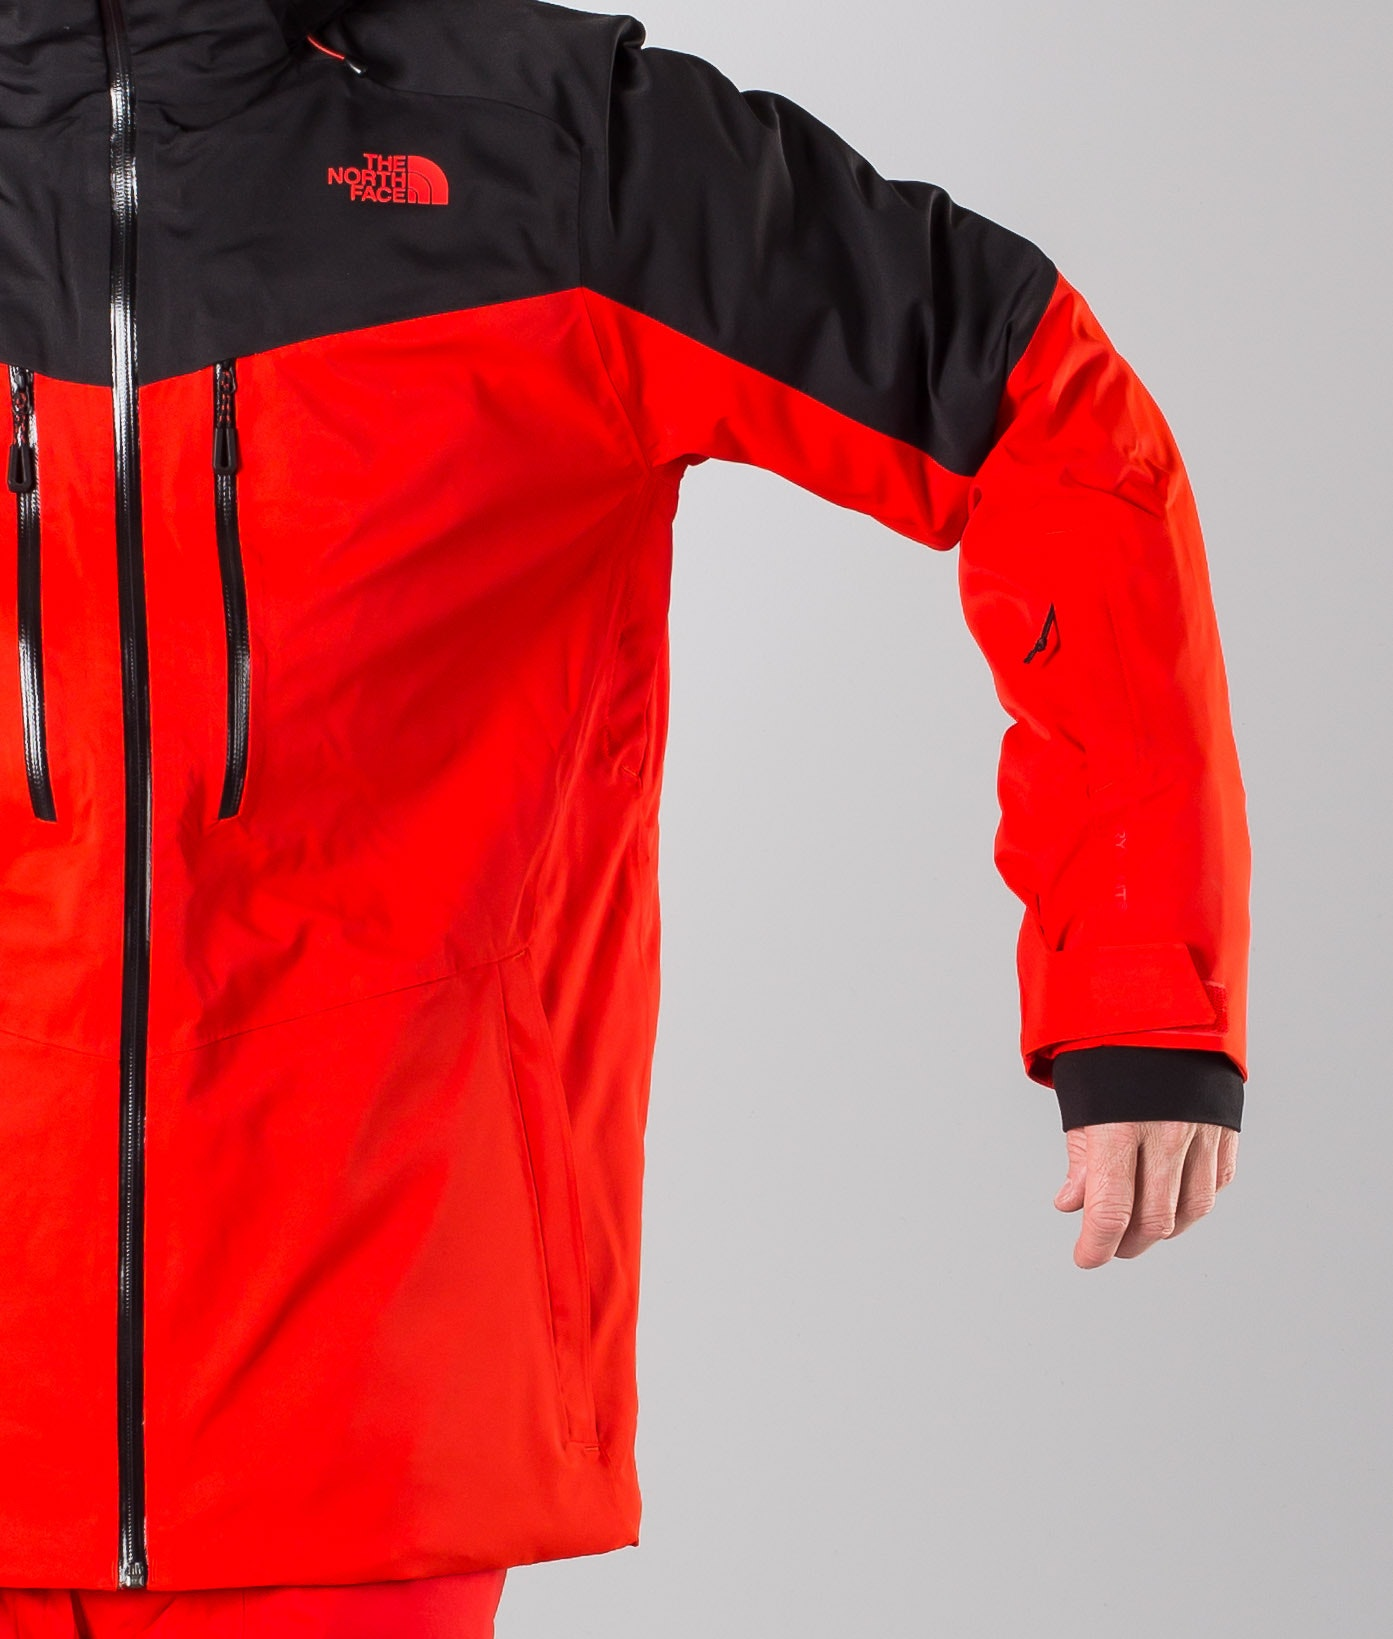 The North Face Chakal Snowboard Jacket Red Black Ridestore Com